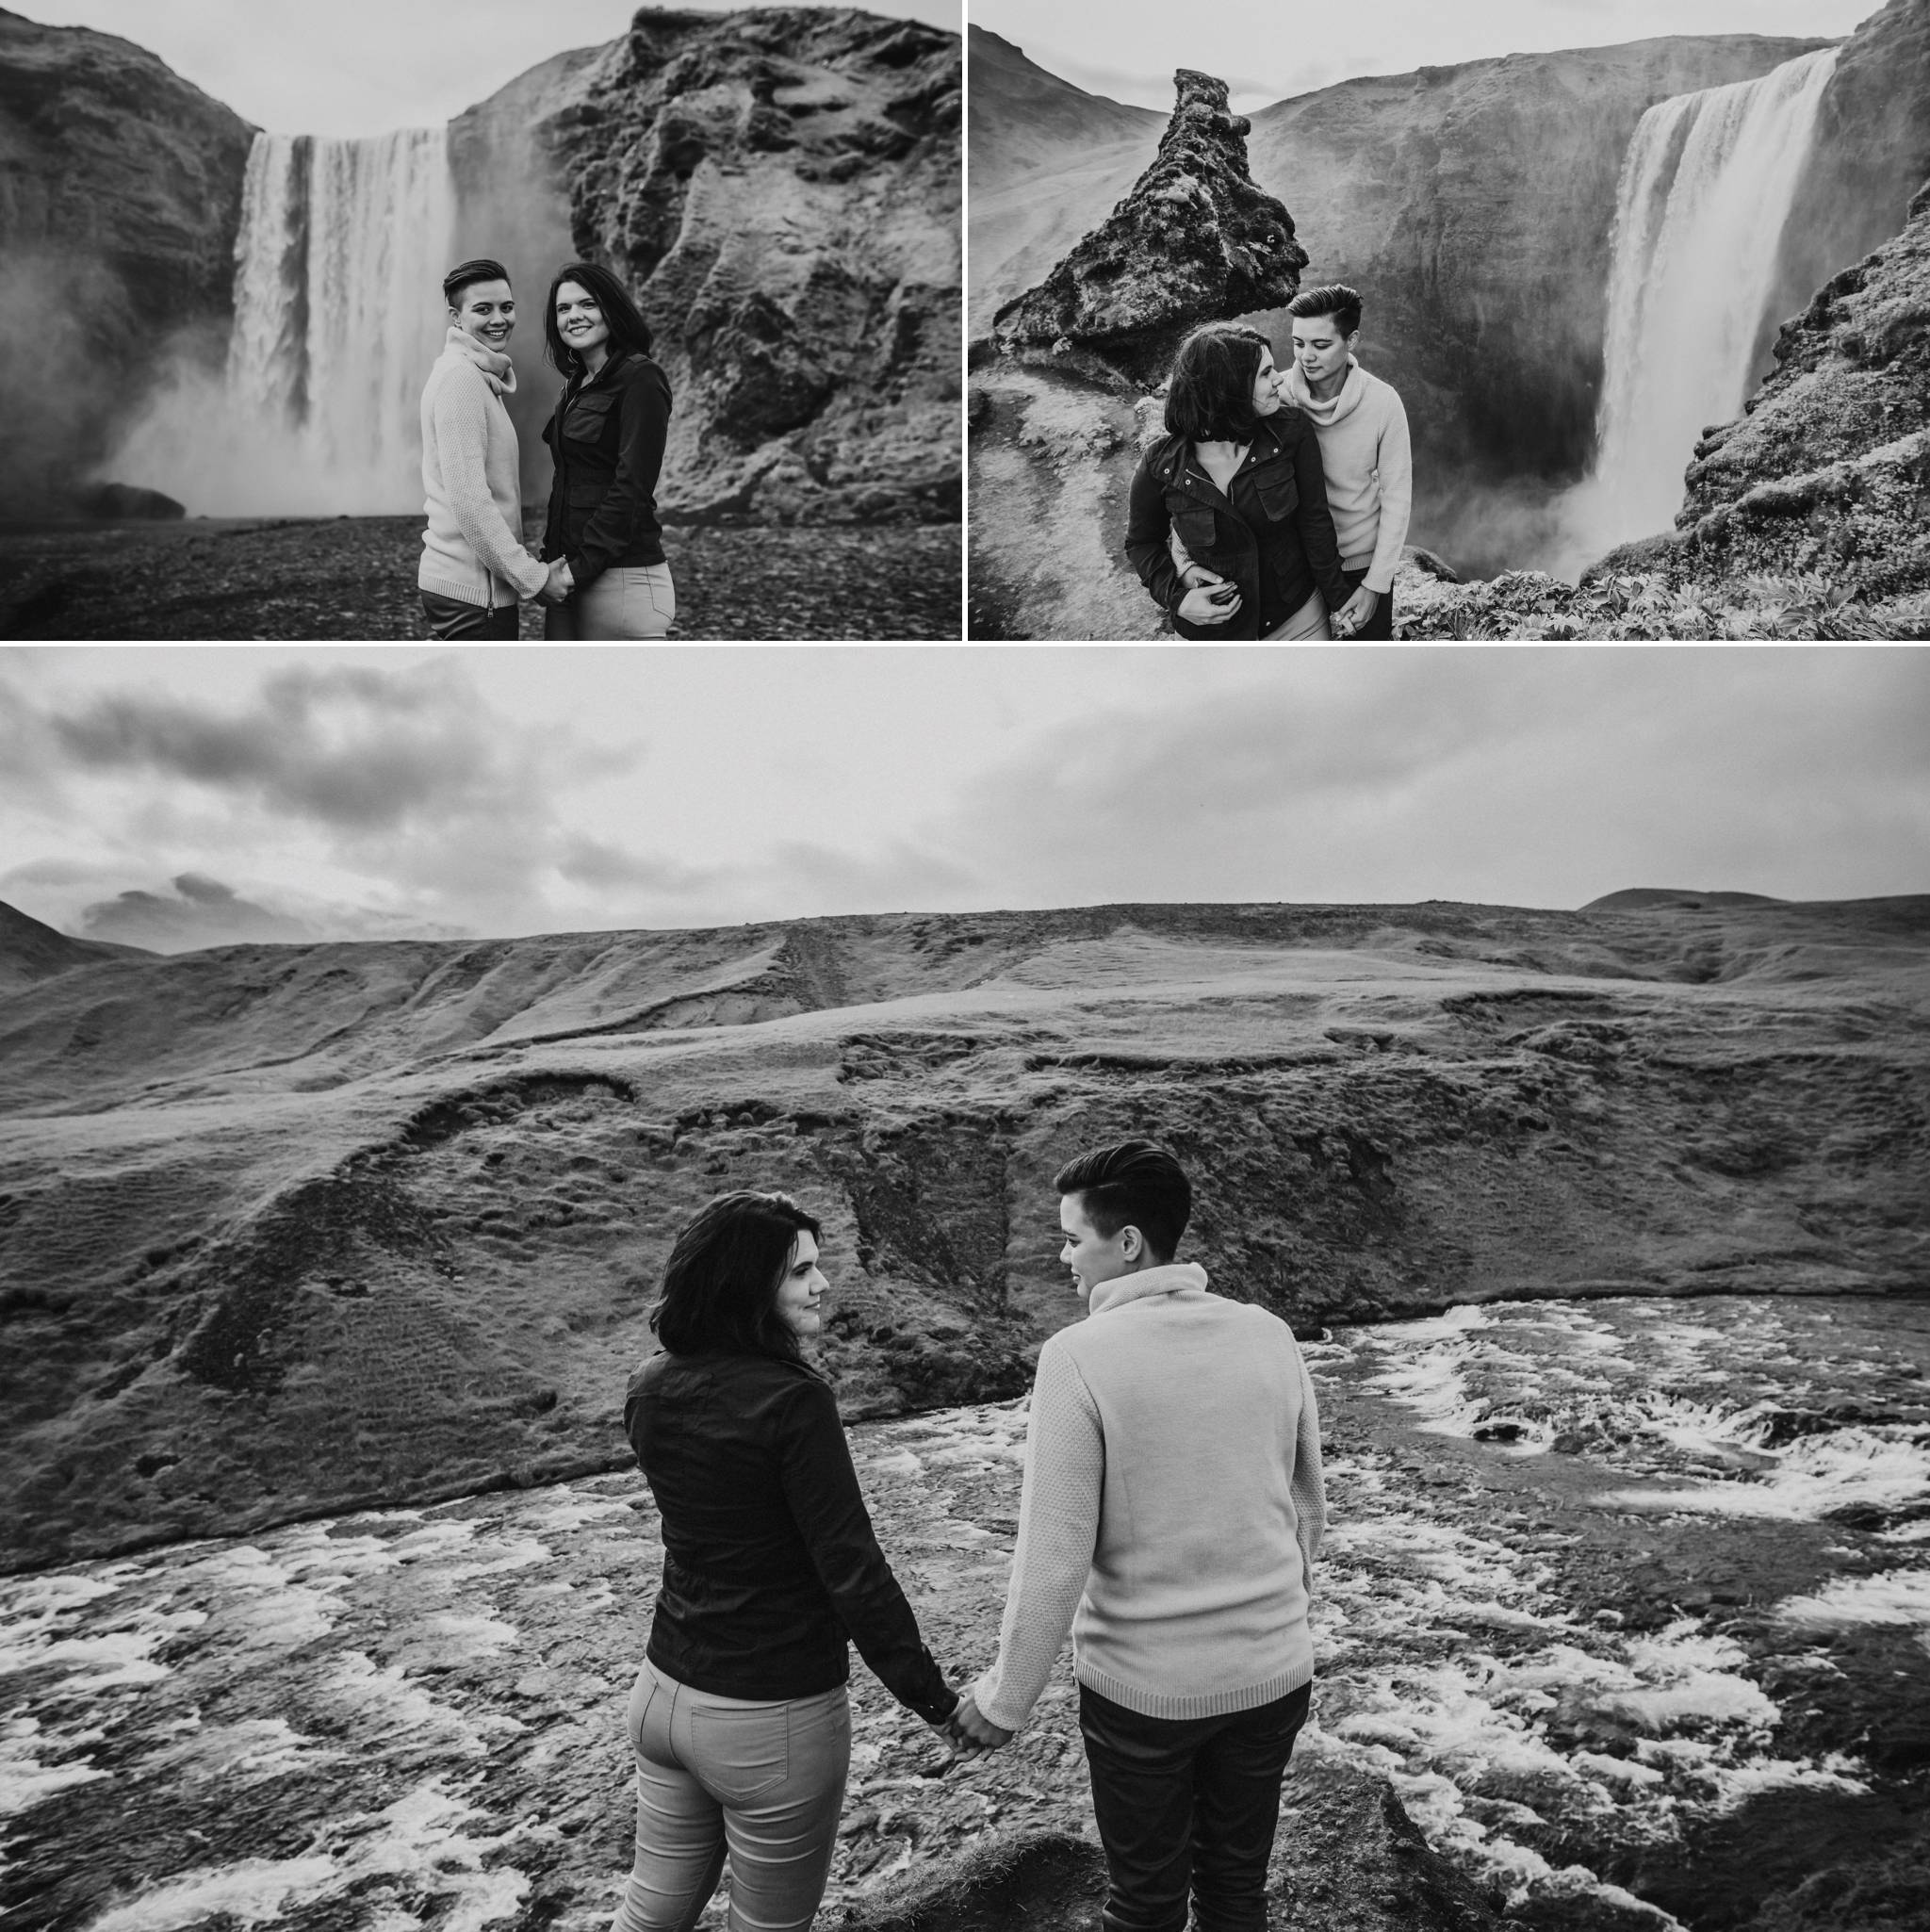 iceland-engagement-photography 10.jpg